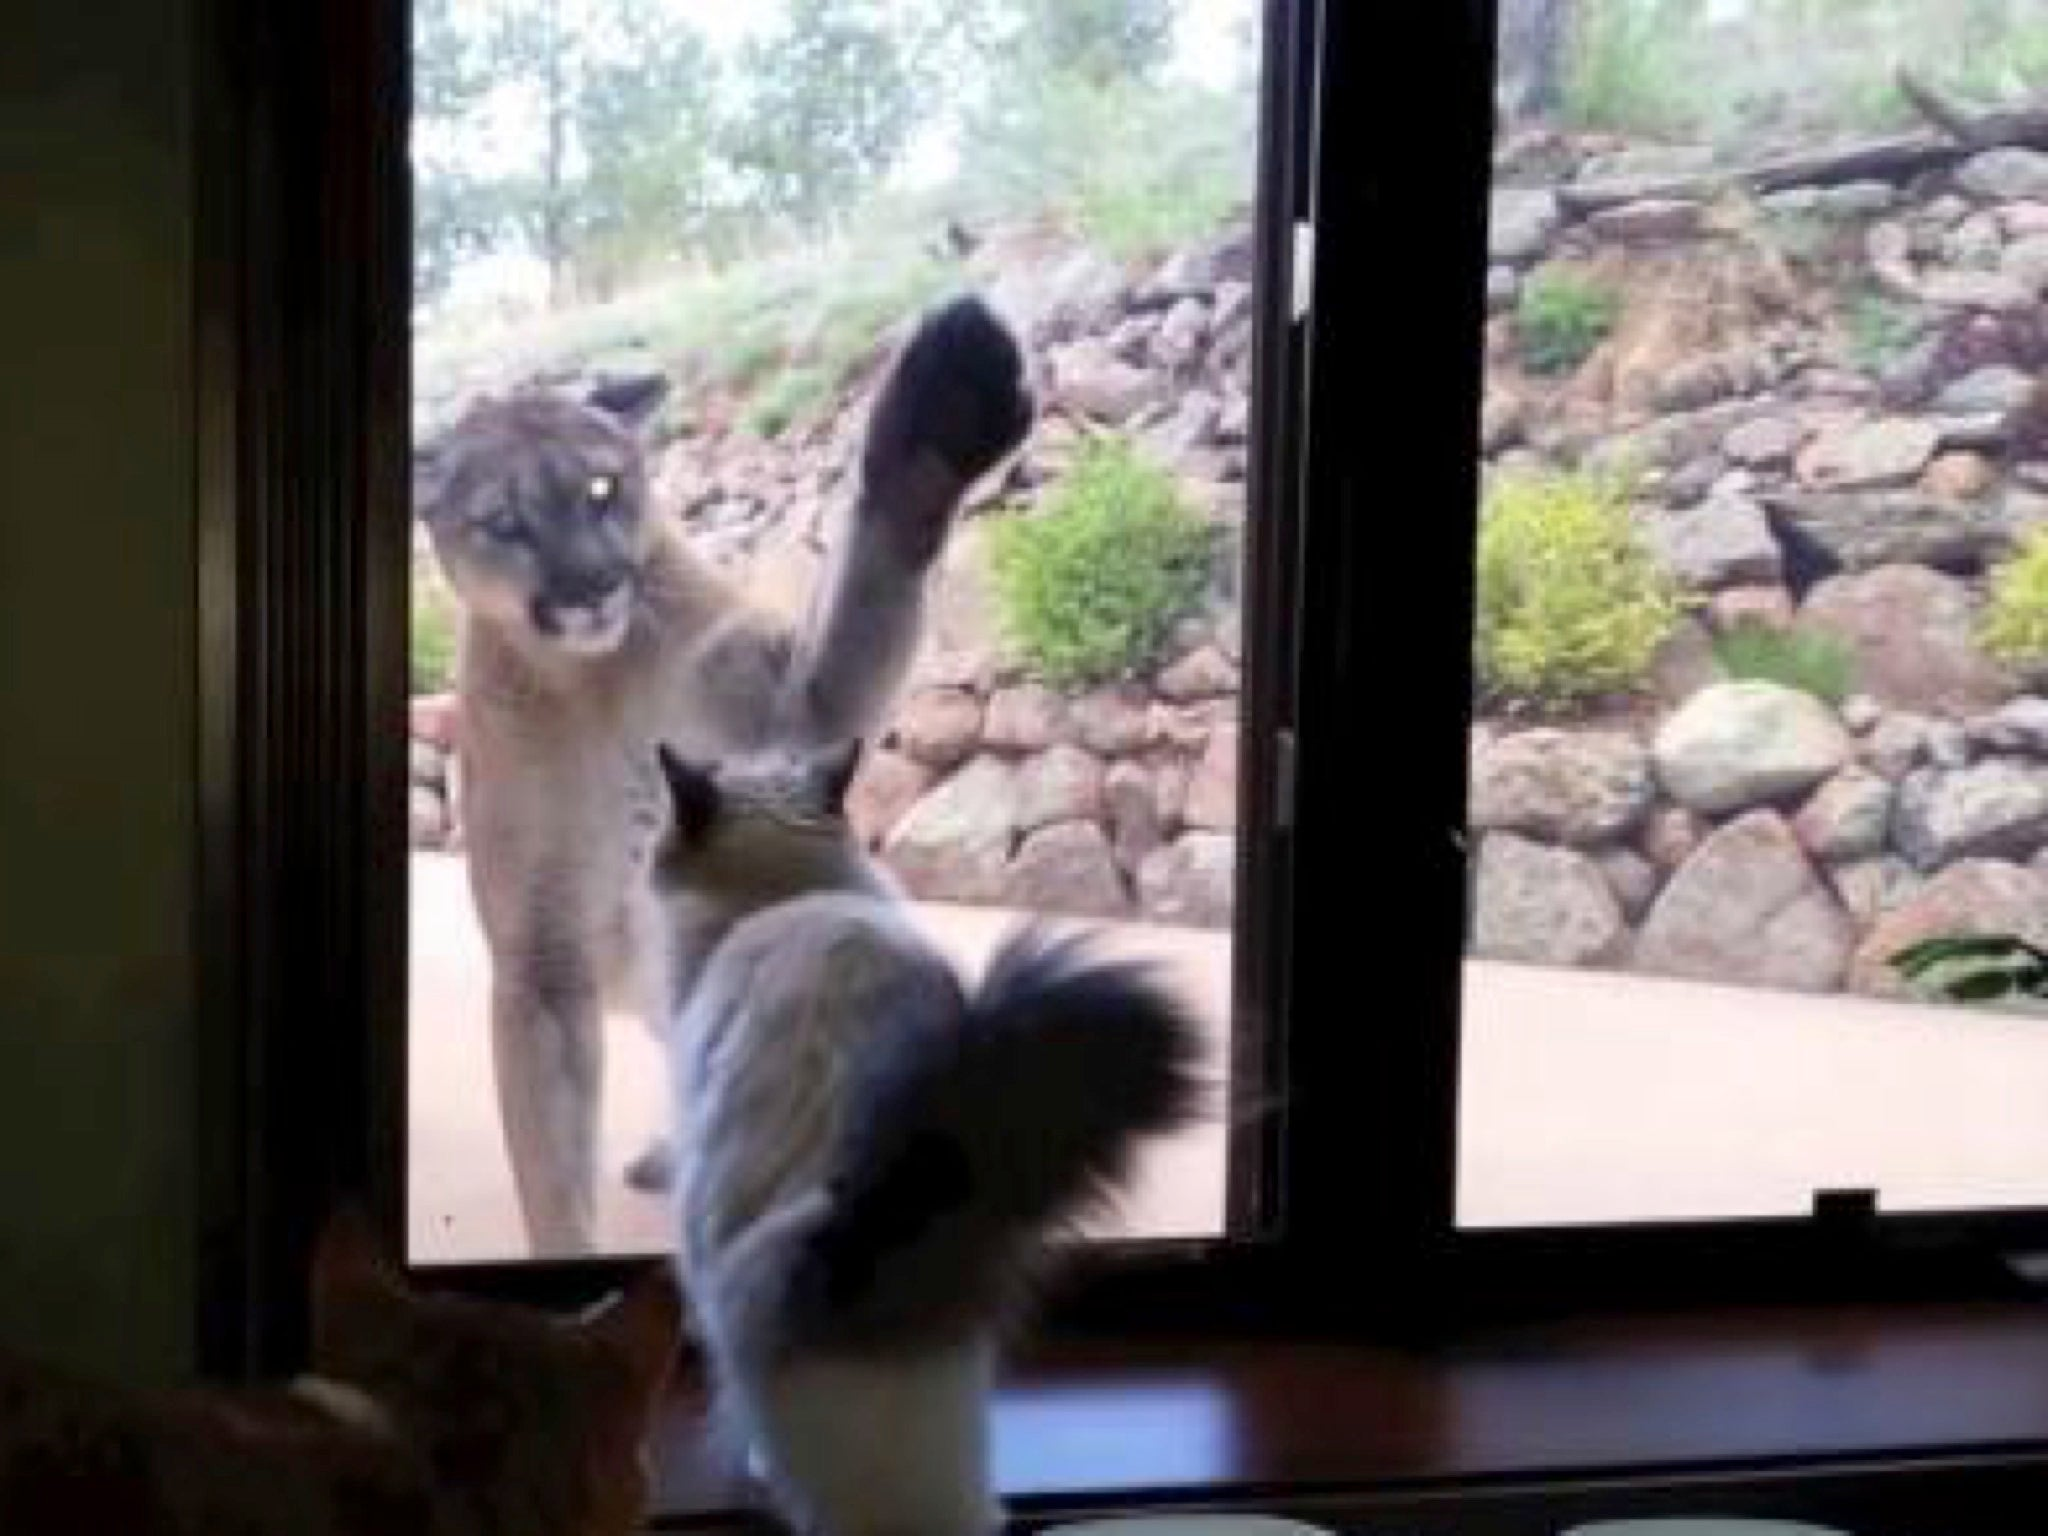 Colorado Health Insurance >> Video of house cat staring down Colorado mountain lion goes viral | Americas | News | The ...